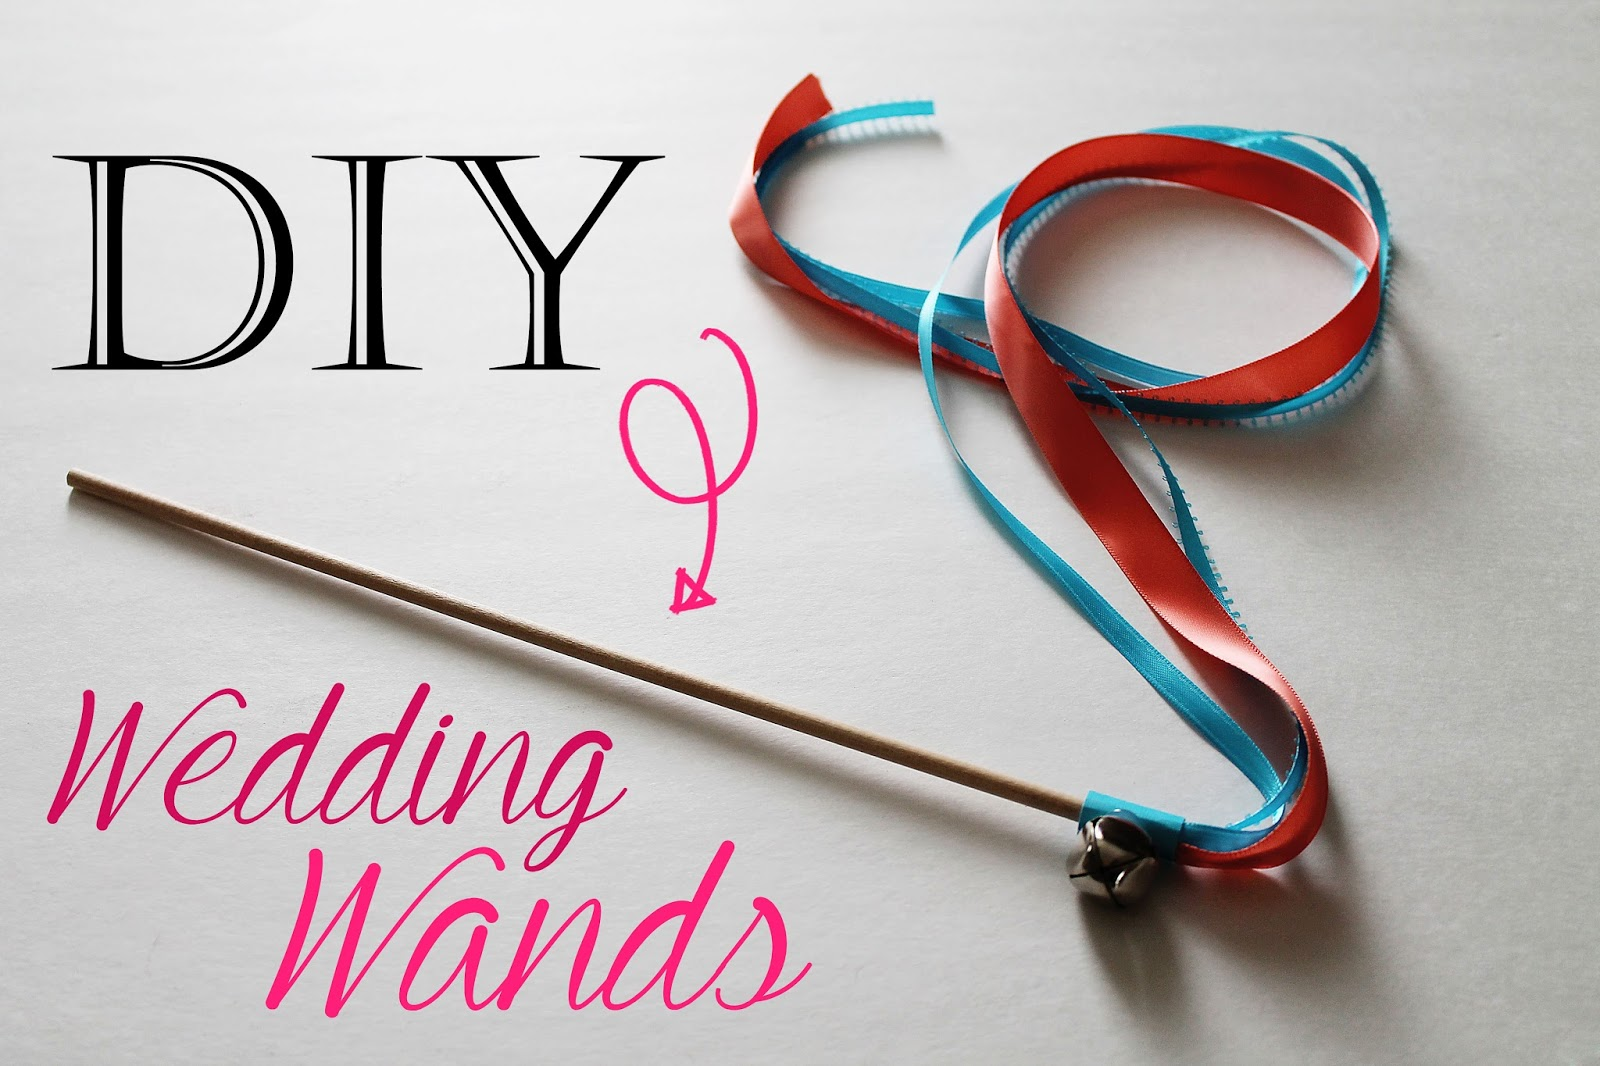 Confessions of a new old home owner diy wedding wands solutioingenieria Gallery